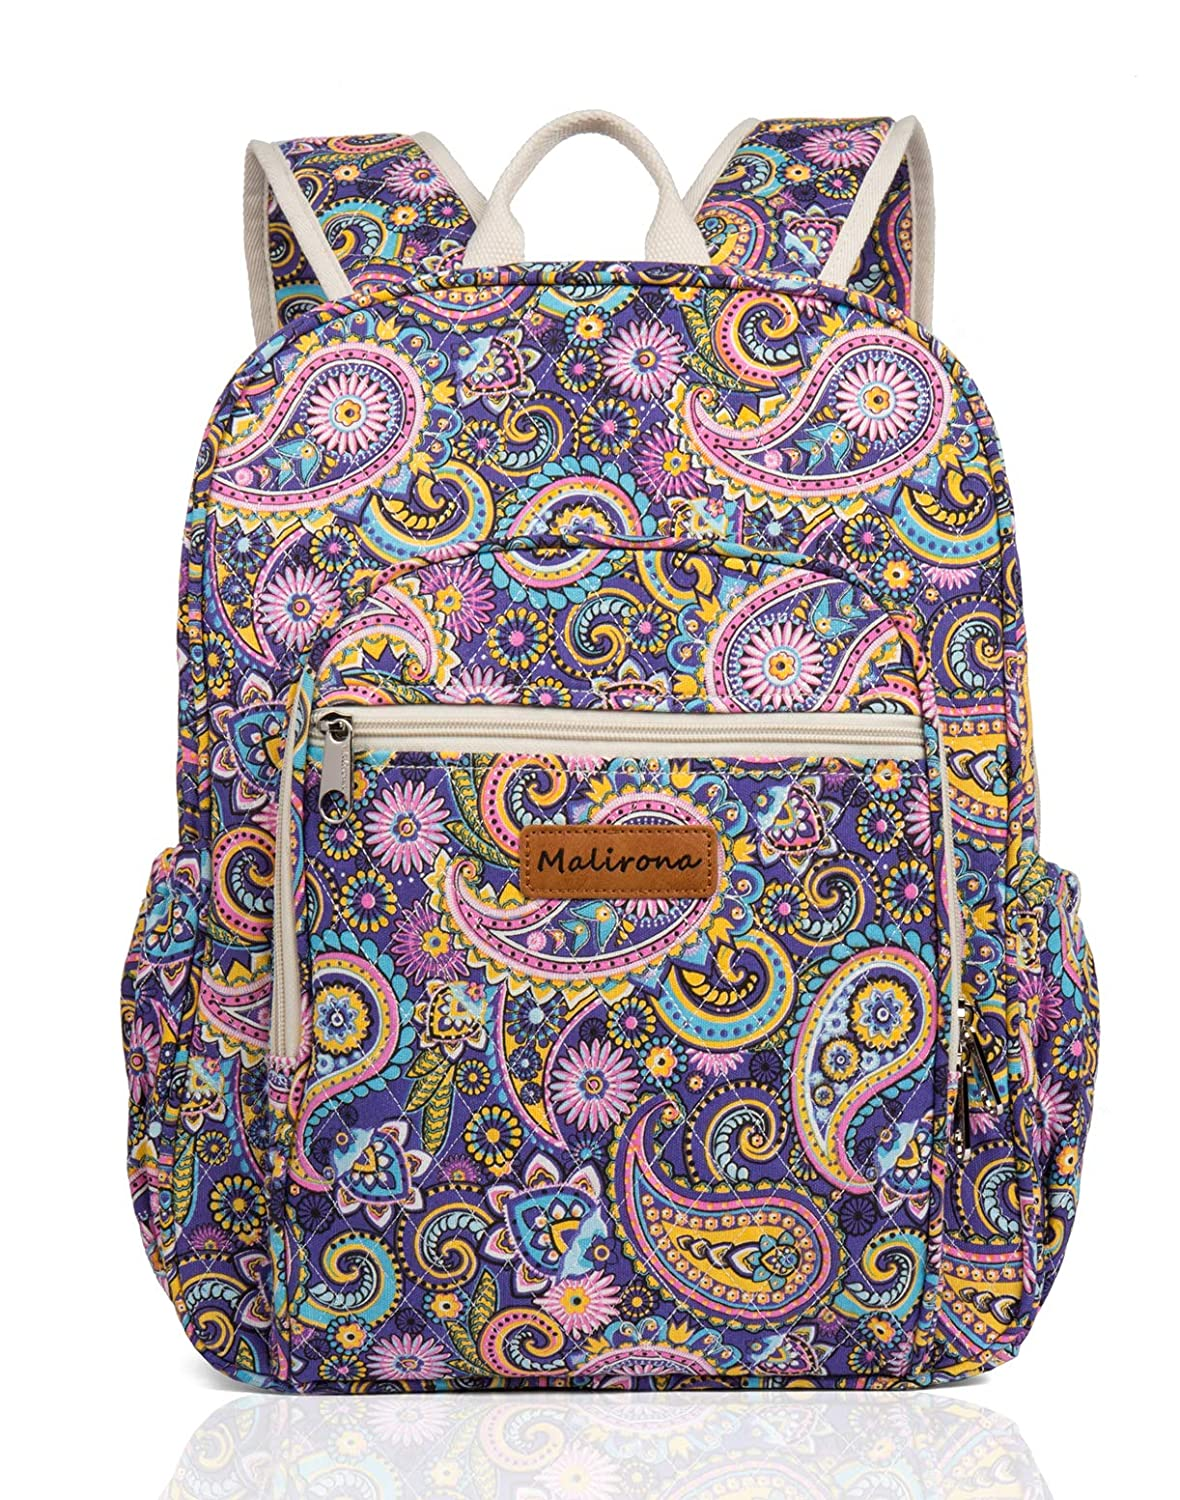 Malirona Canvas Campus Laptop Daypacks Backpack School Bags For Women And Men – Laptop Carrying, Trolley Sleeve, 7 Colors Purple Flower